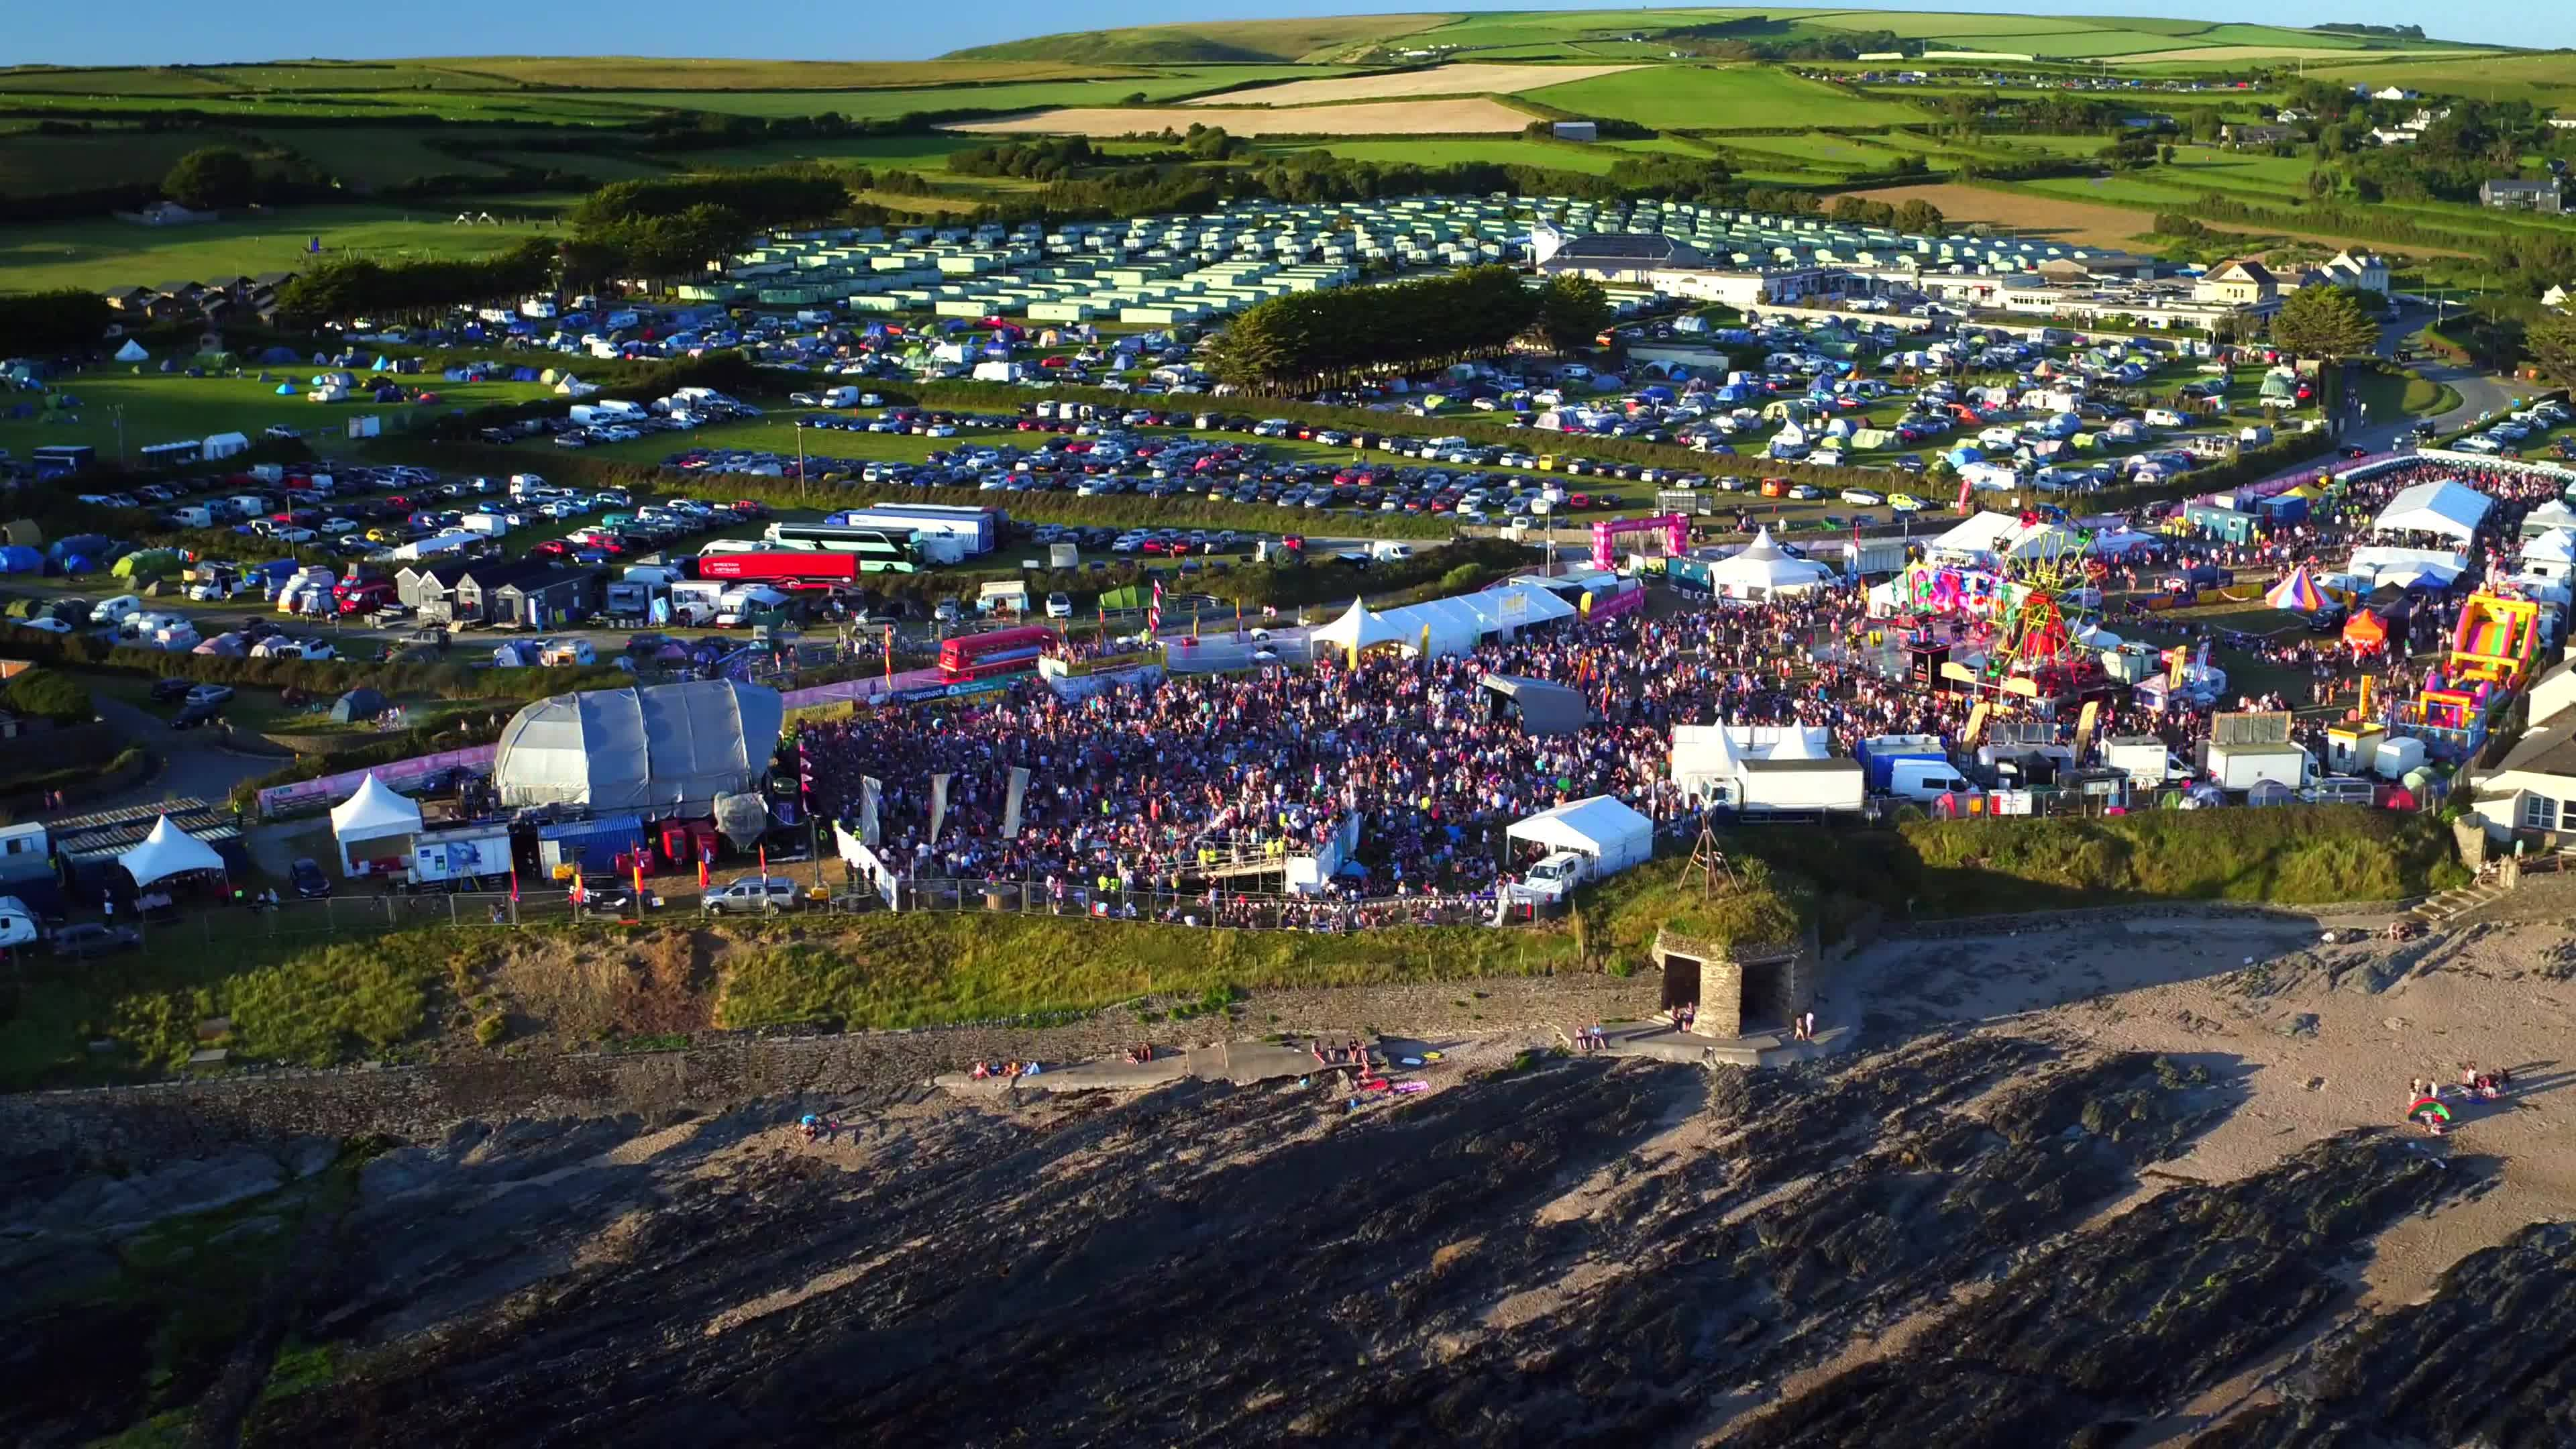 #oceanfest19 and our music tradition continues to deliver - absolute quality lin...